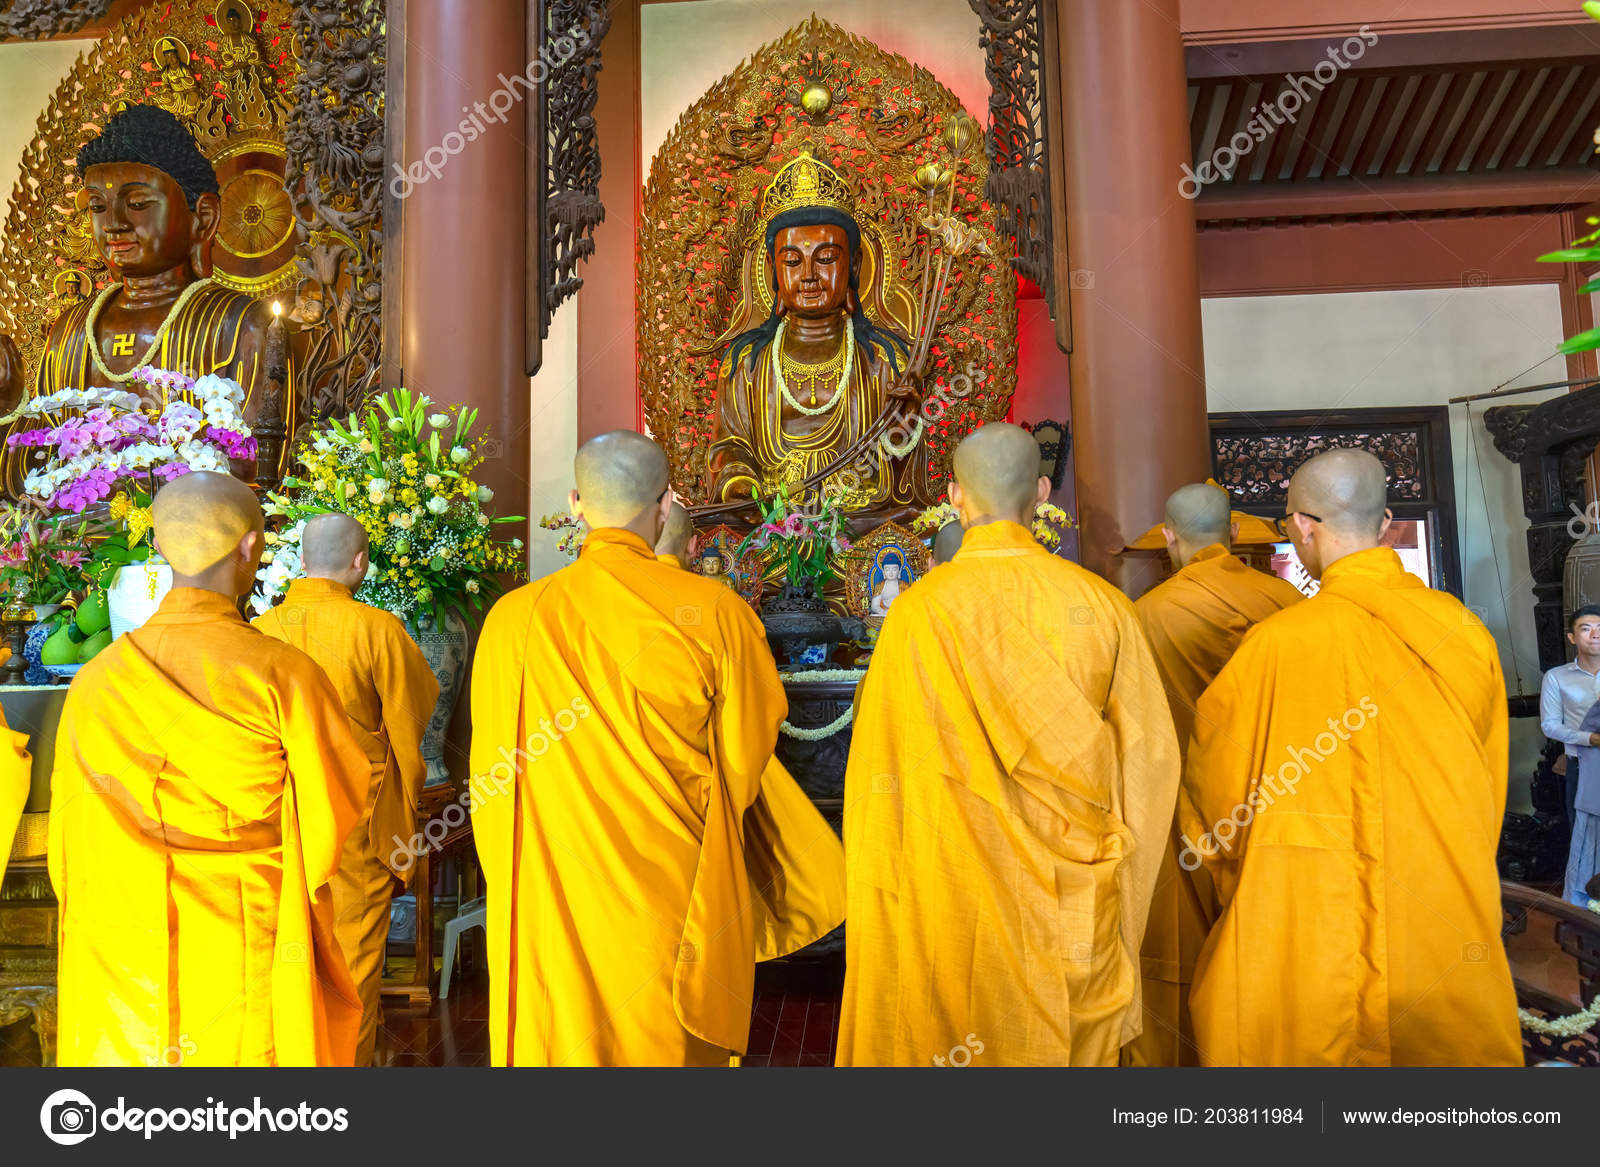 an overview of the traditional buddhism Buddhism (/ˈbʊdɪzəm/, us also /ˈbuː-/) is the world's fourth-largest religion with over 520 million followers, or over 7% of the global population, known as buddhists.